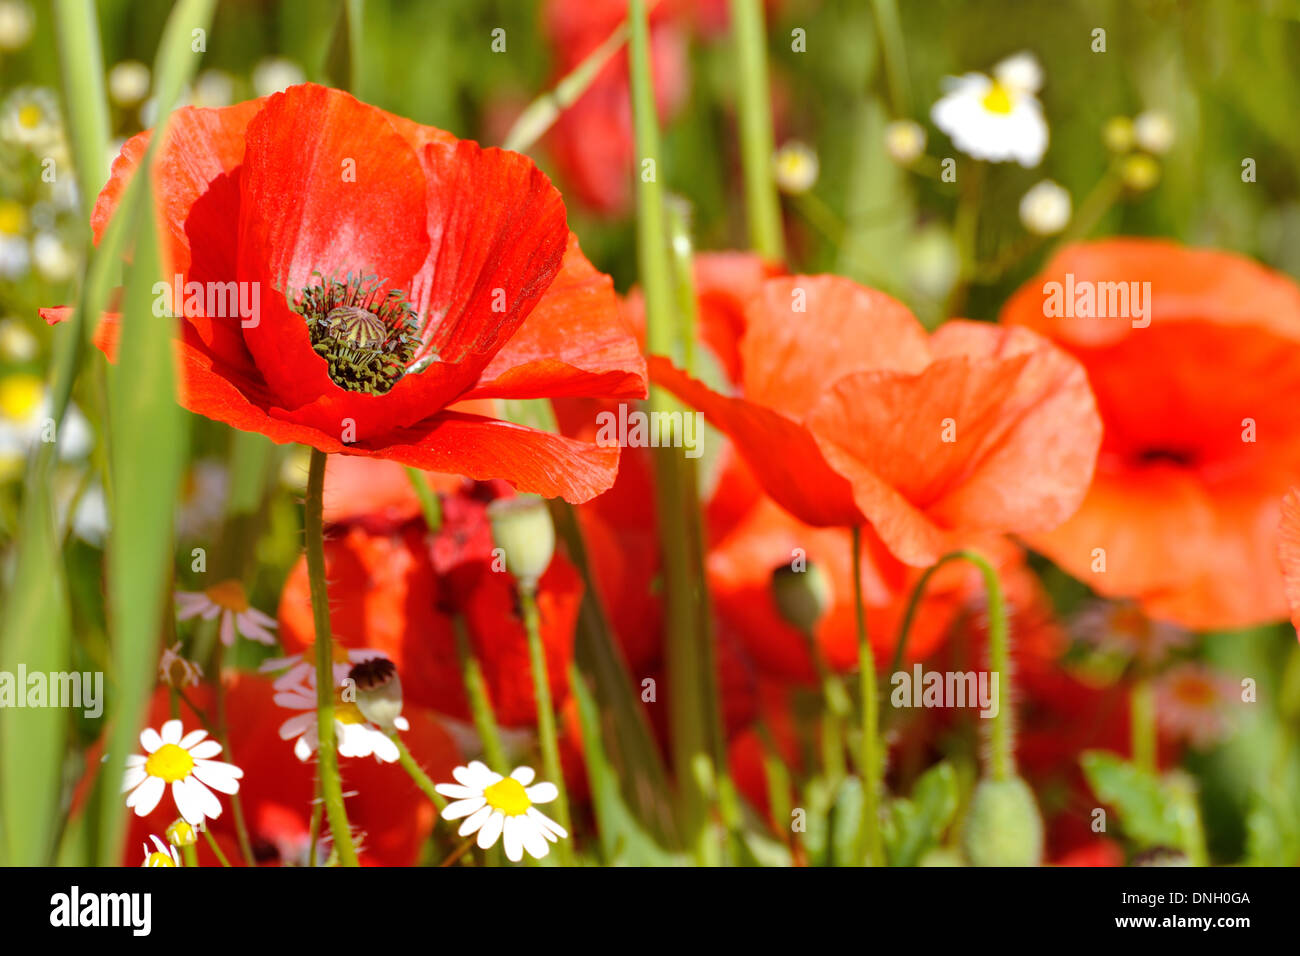 Poppy flower in a field red poppies symbol of remembrance symbol poppy flower in a field red poppies symbol of remembrance symbol of a new summer season dhlflorist Images